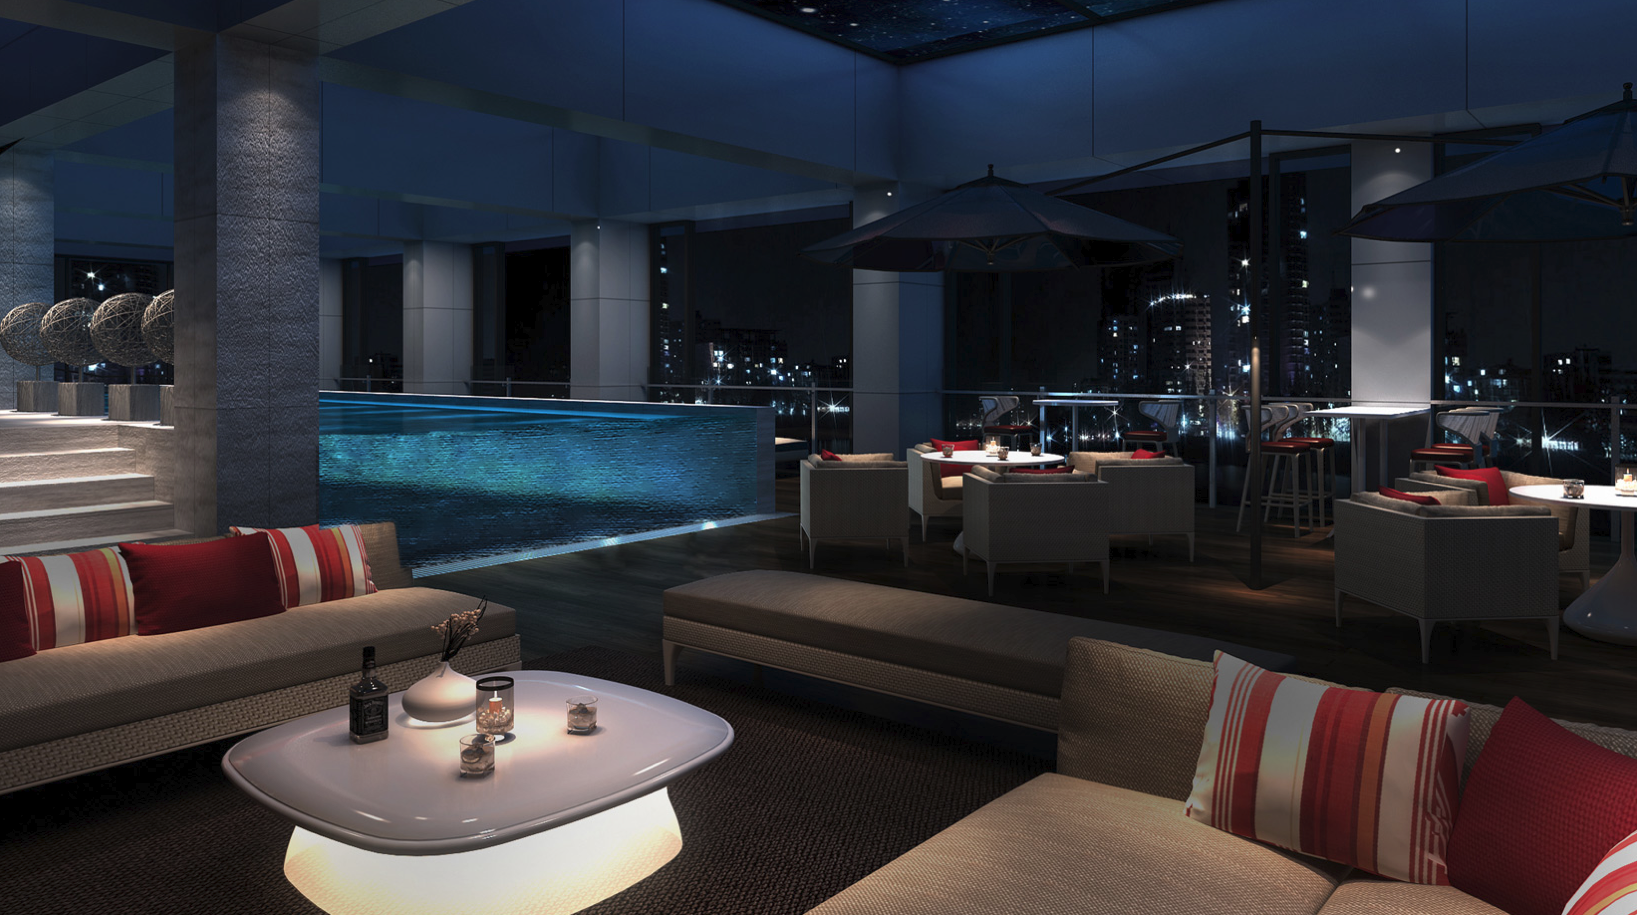 The hotel's sparkly swimming pool that's adjacent to the spa is located on the 11th floor.